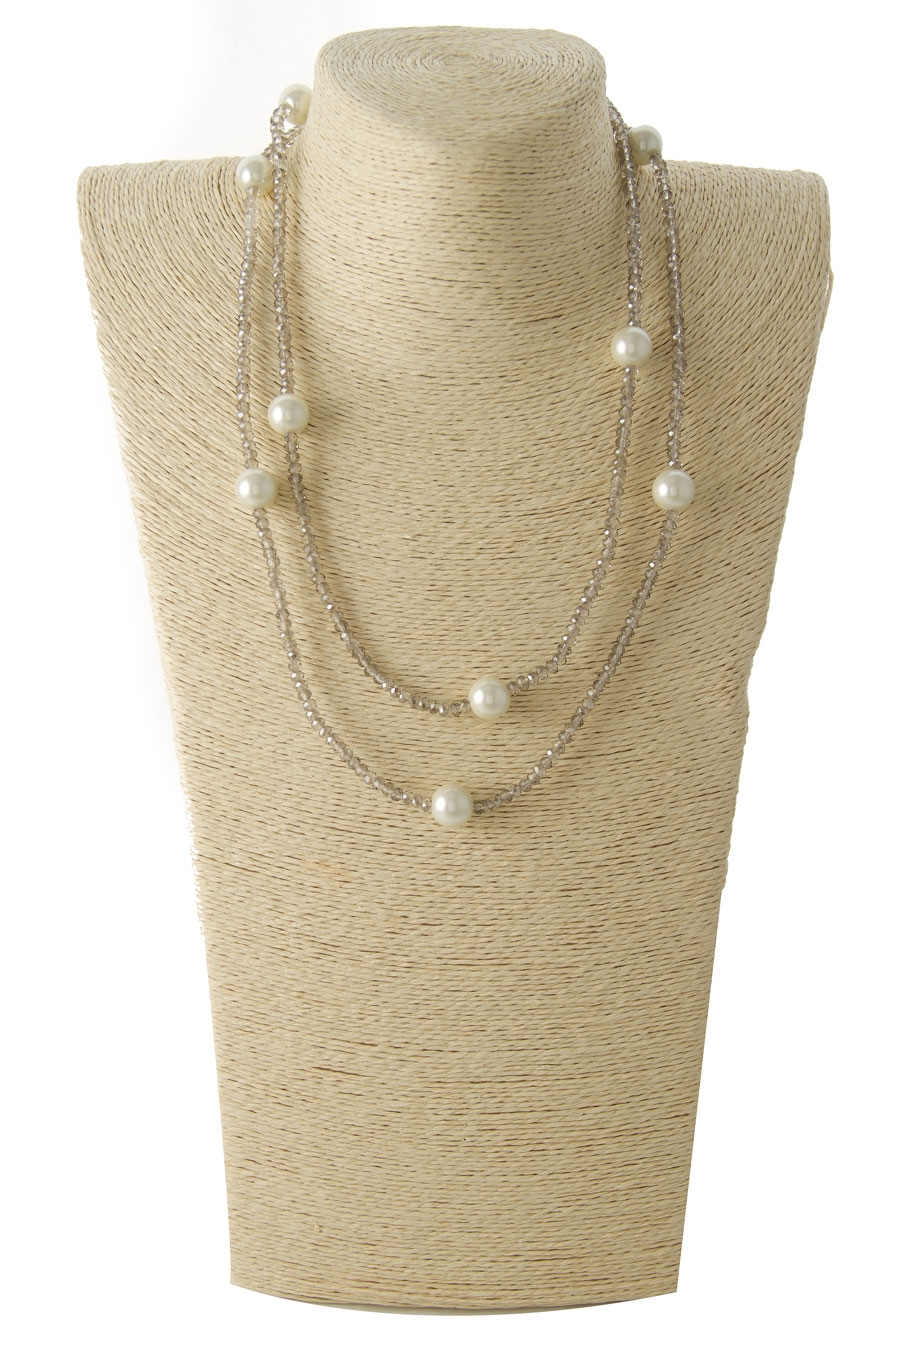 BEADED PEARL LONG NECKLACE - orangeshine.com